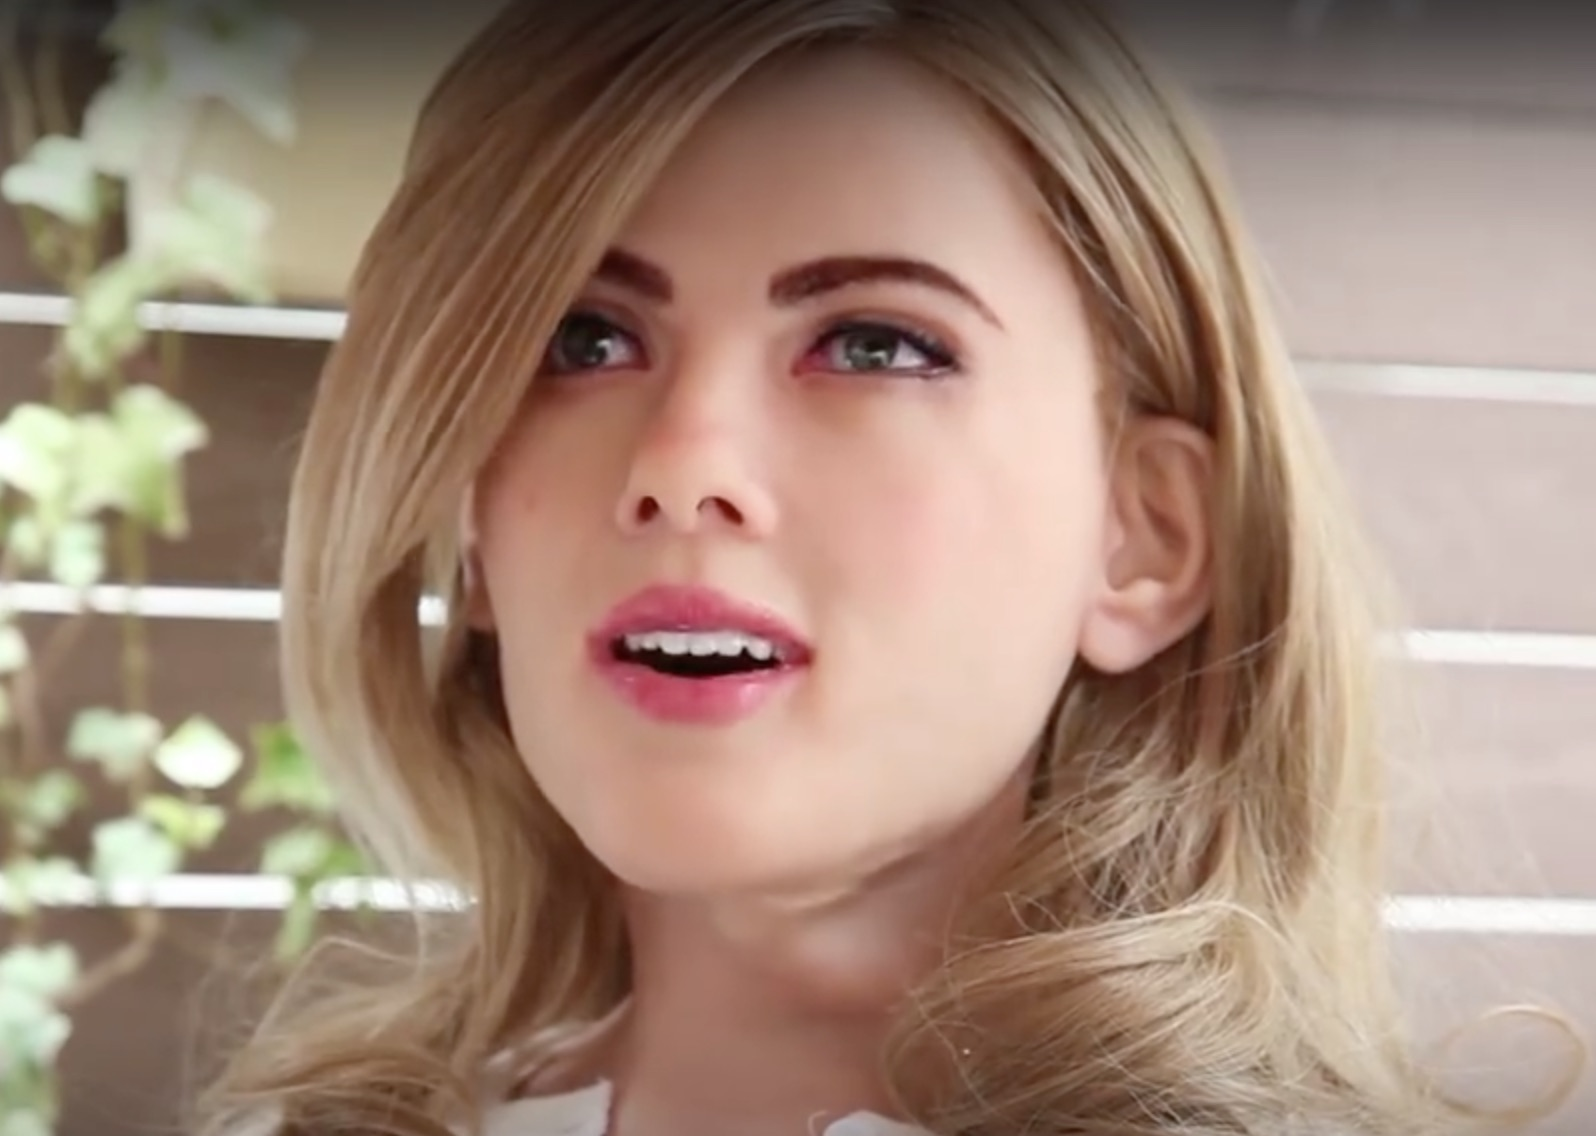 This robot looks like Scarlett Johansson and we're not sure how to feel about it